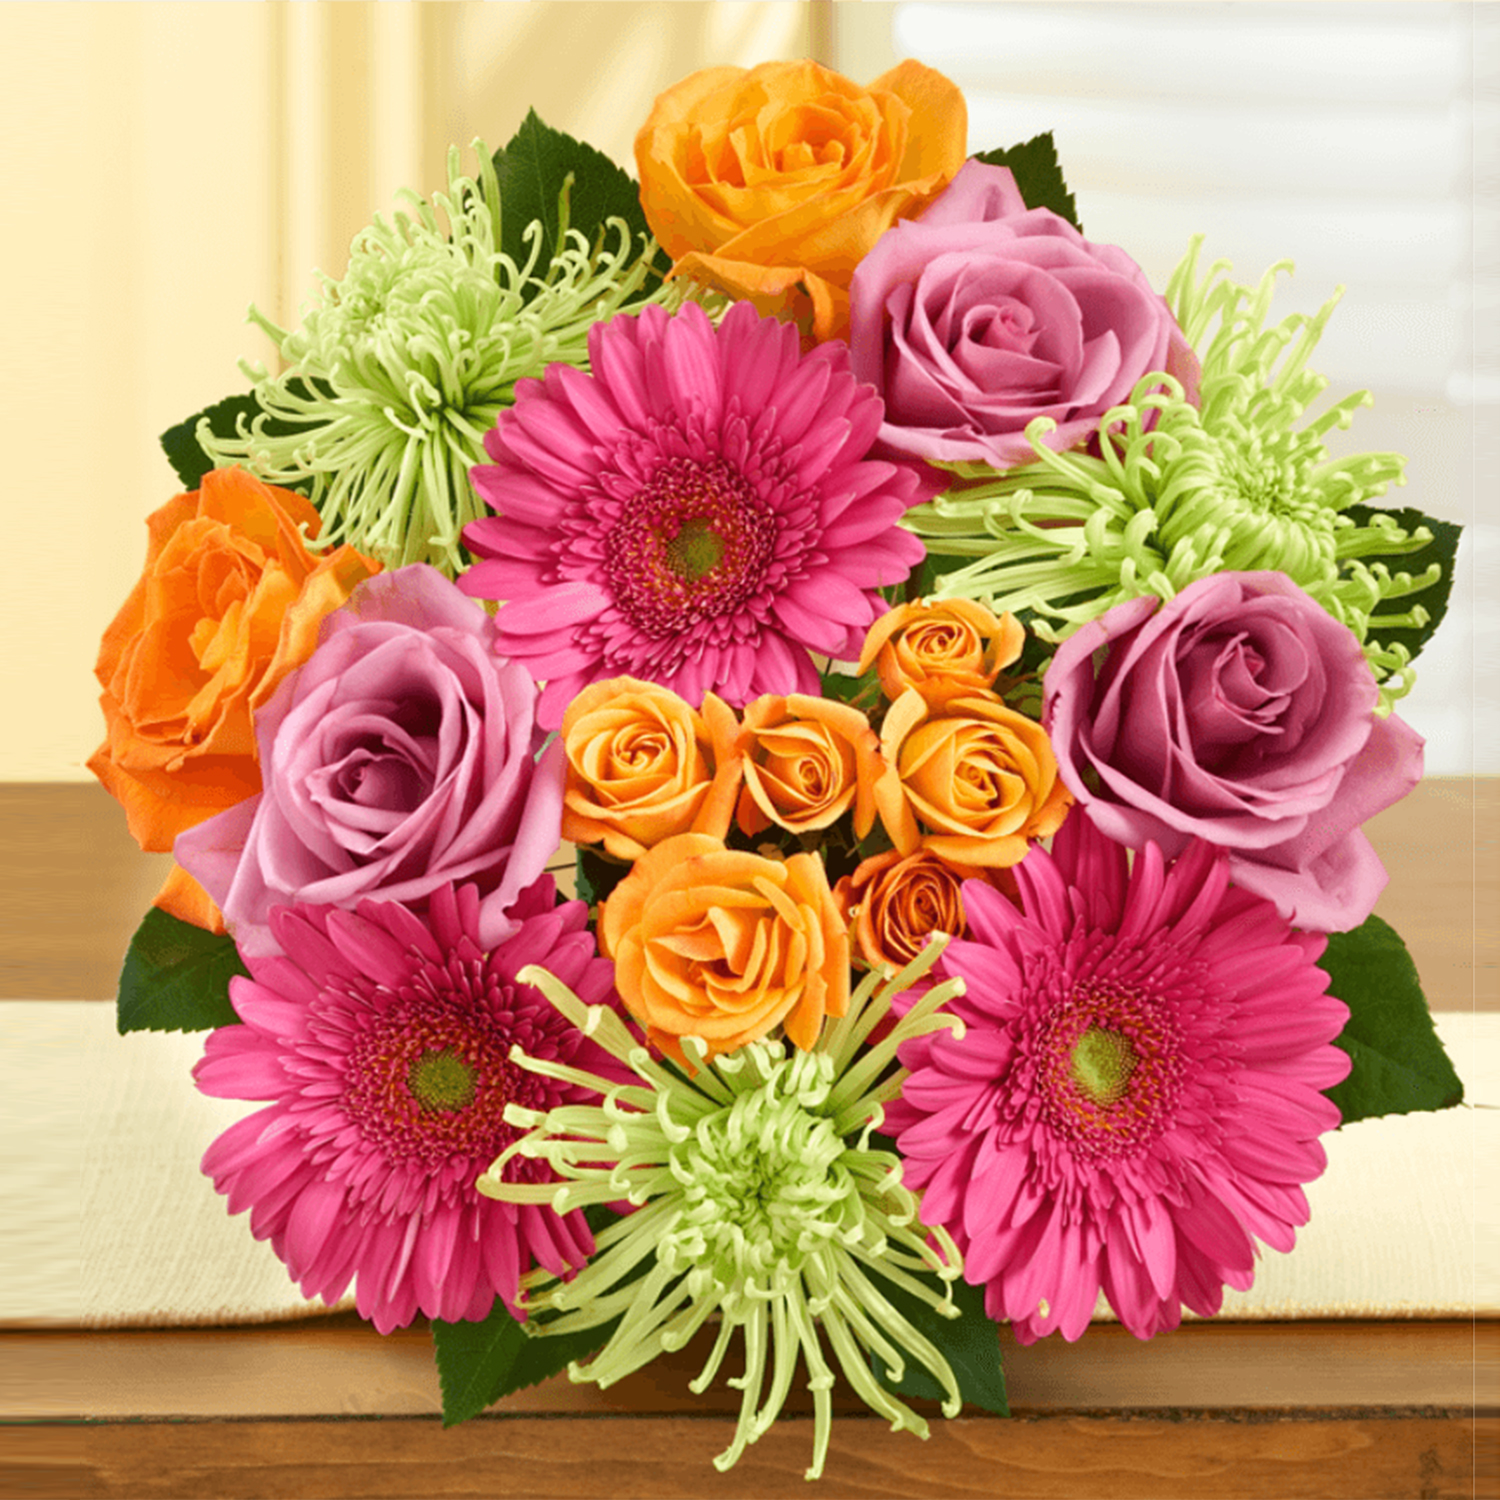 Florists Happy and Bright Bouquet